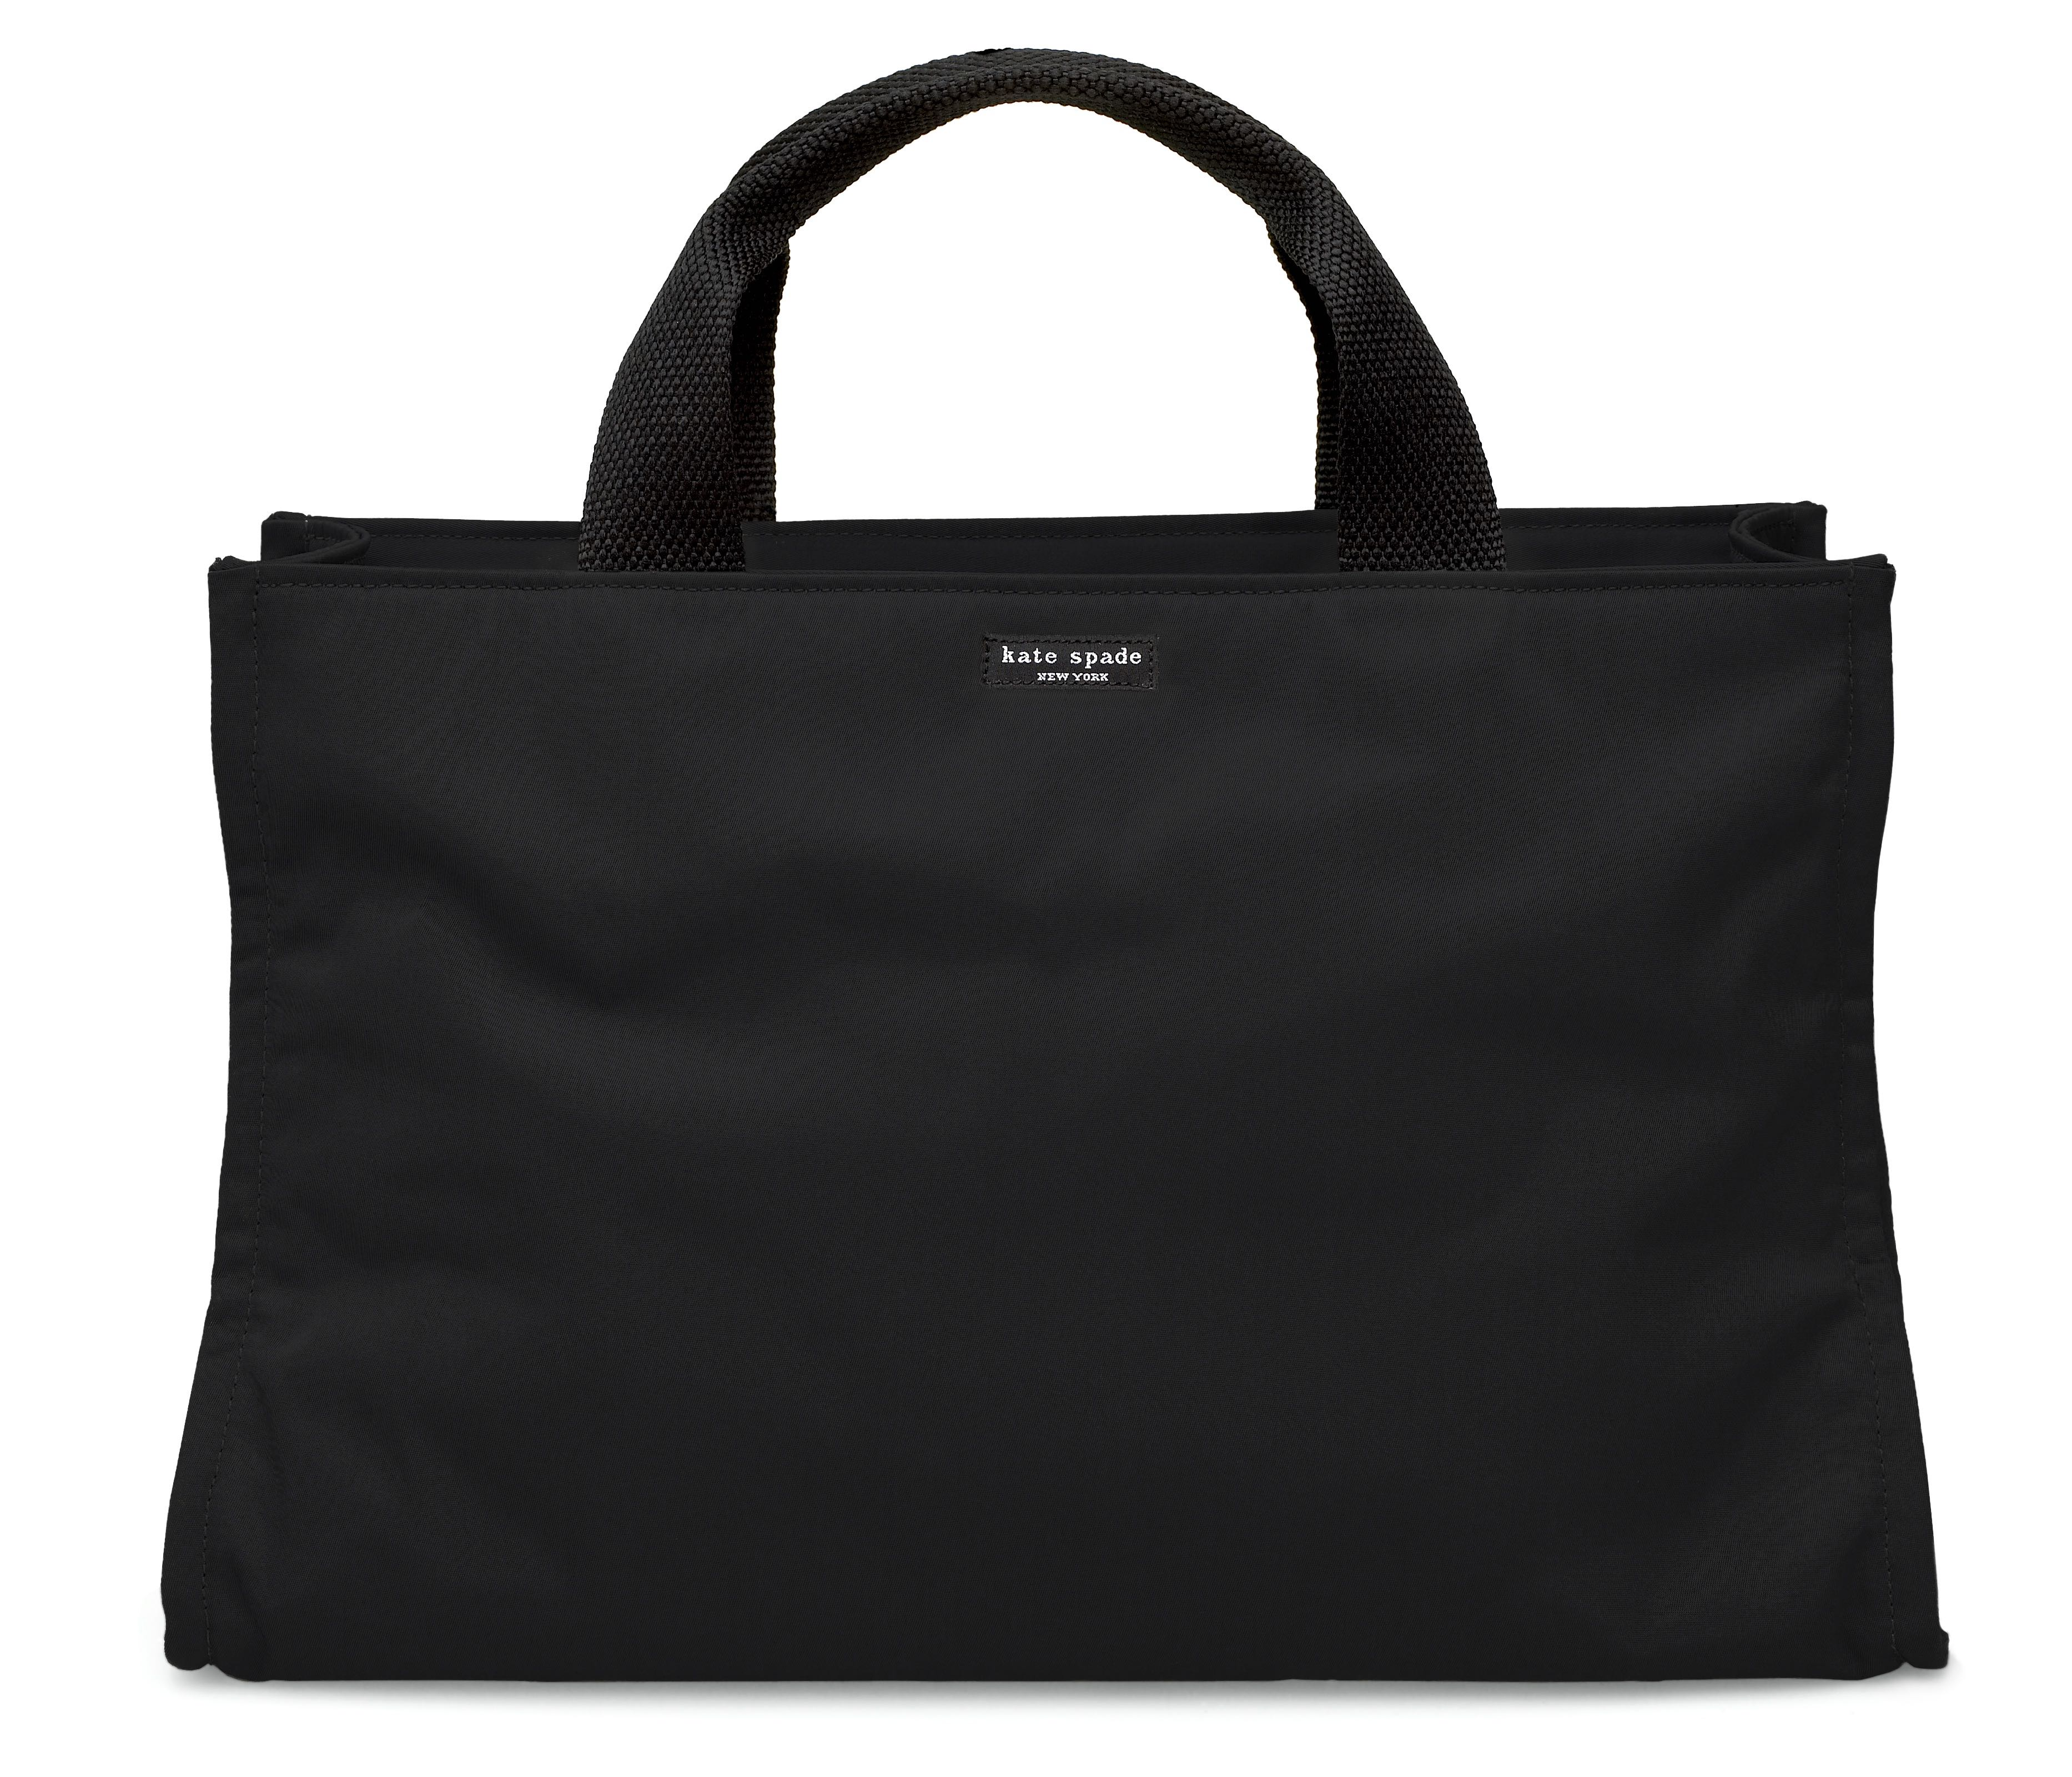 The Sam bag from Kate Spade, 1993.